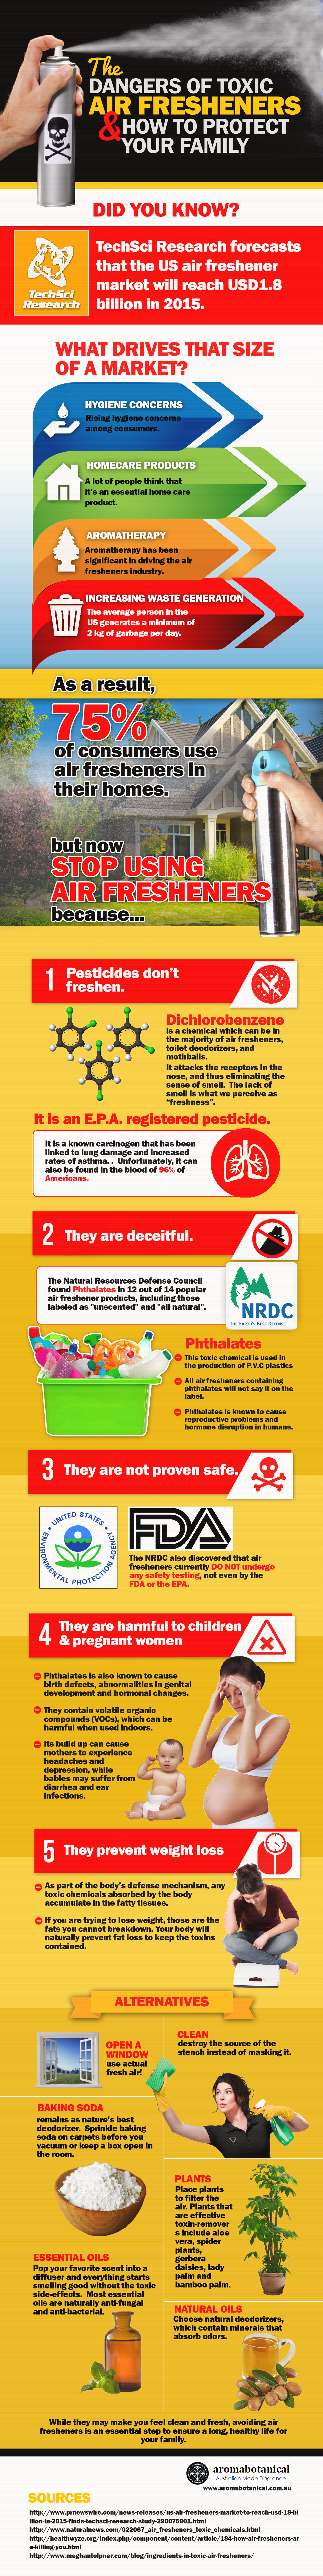 The Dangers of Toxic Air Fresheners and How to Protect Your Family